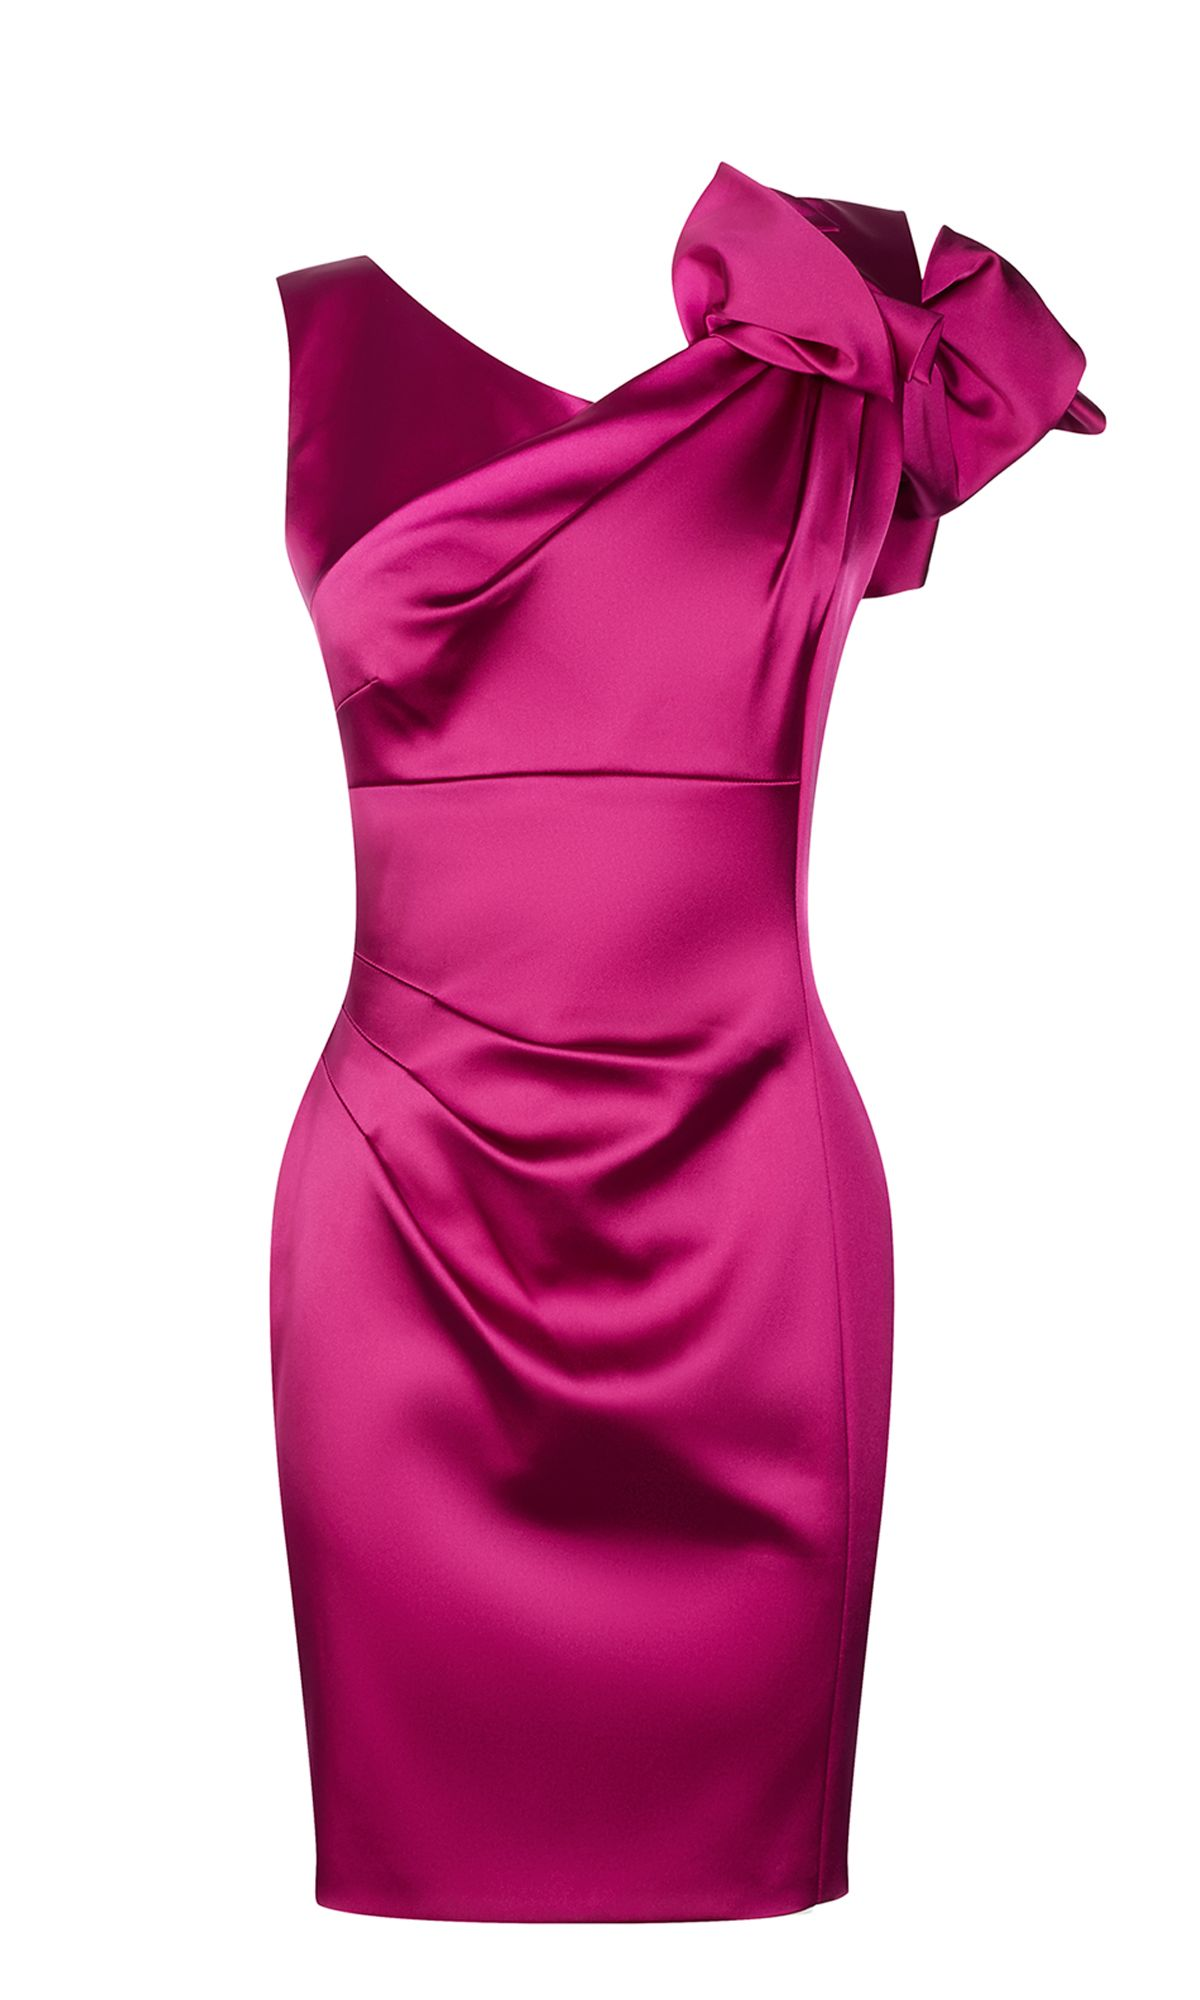 Karen Millen Satin One-Shoulder Pencil Dress, Magenta